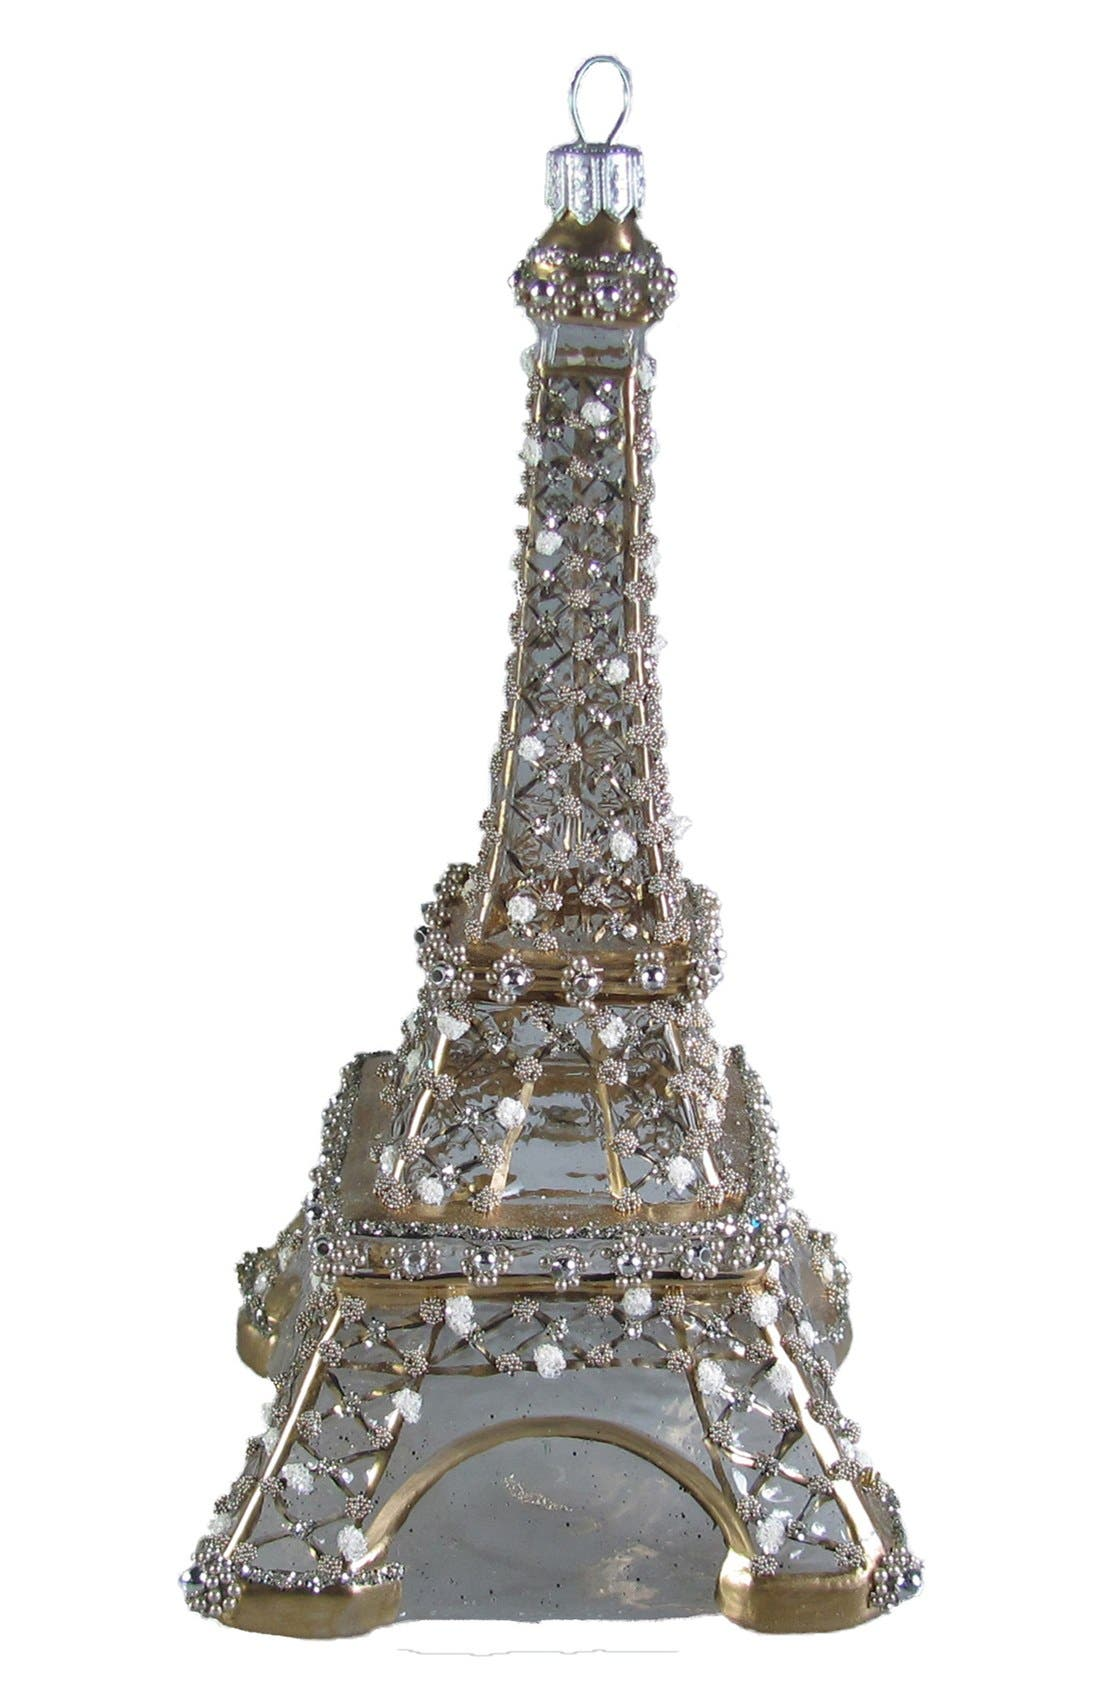 NORDSTROM AT HOME Crystal Embellished Eiffel Tower Ornament, Main, color, 710